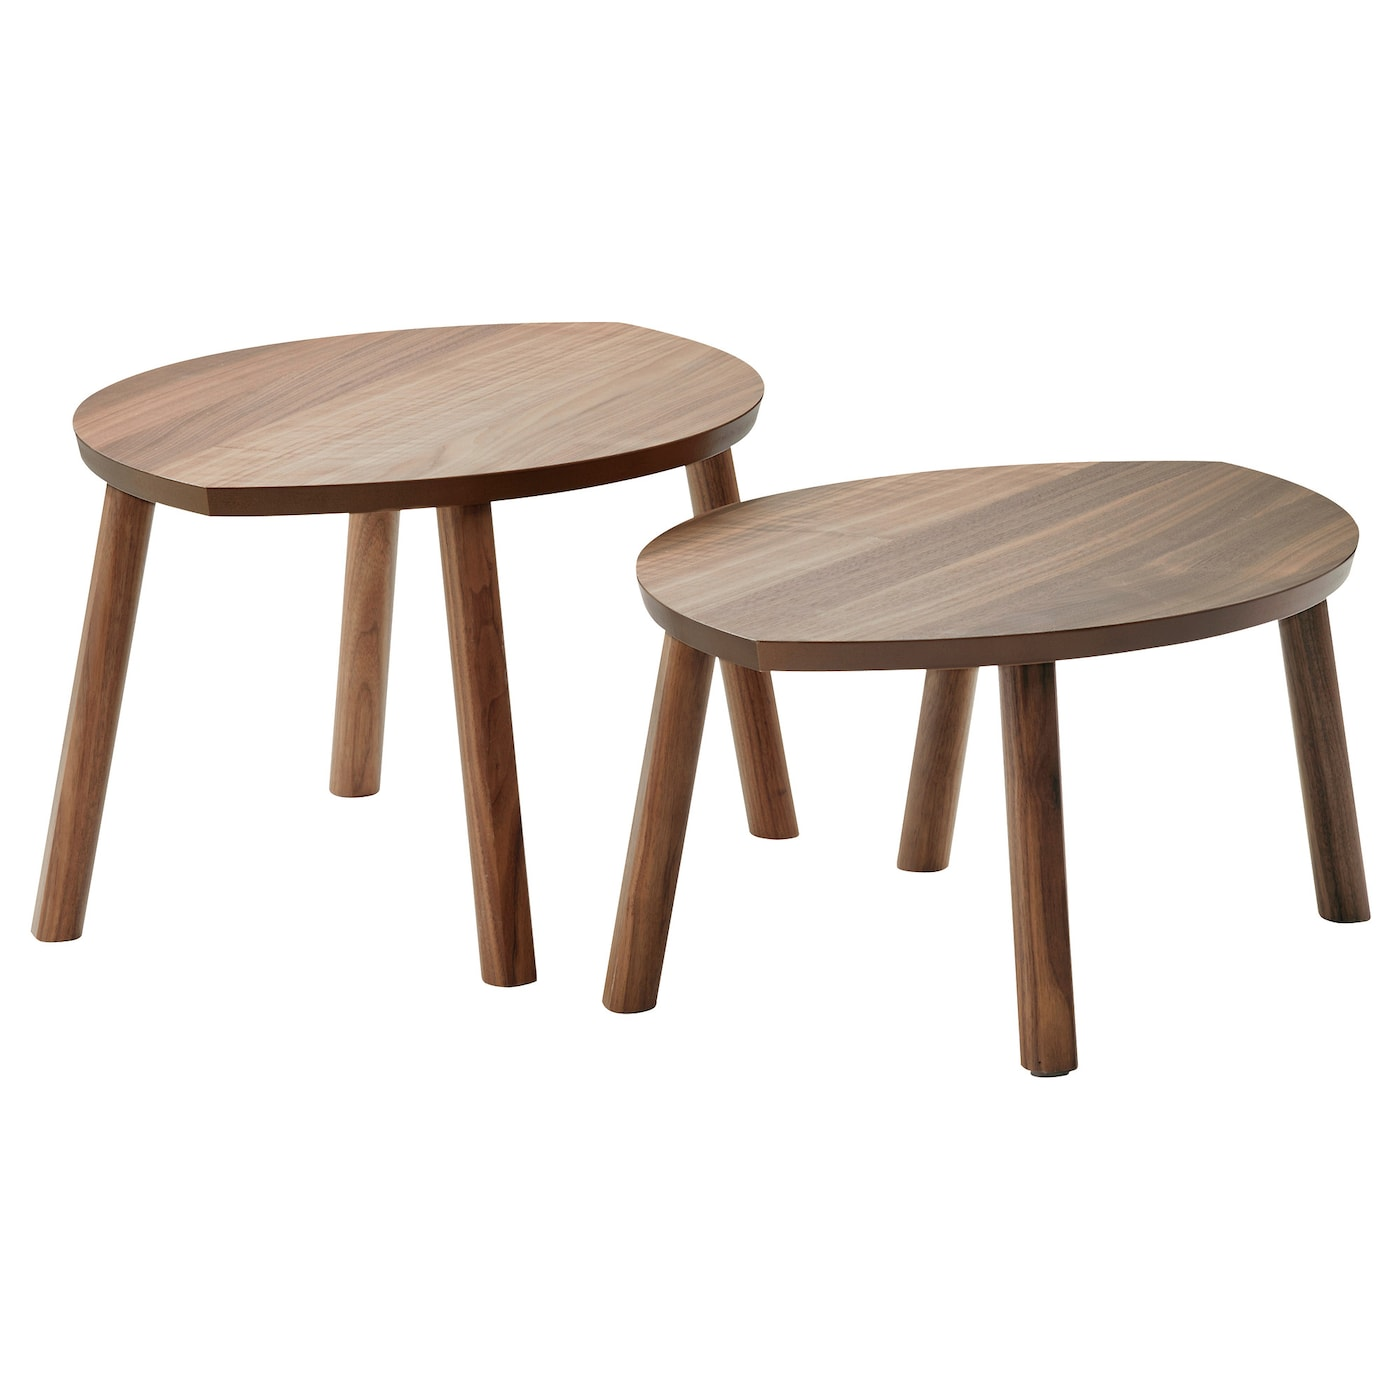 Retro light teak circular glass top coffee table nest of tables by - Ikea Stockholm Nest Of Tables Set Of 2